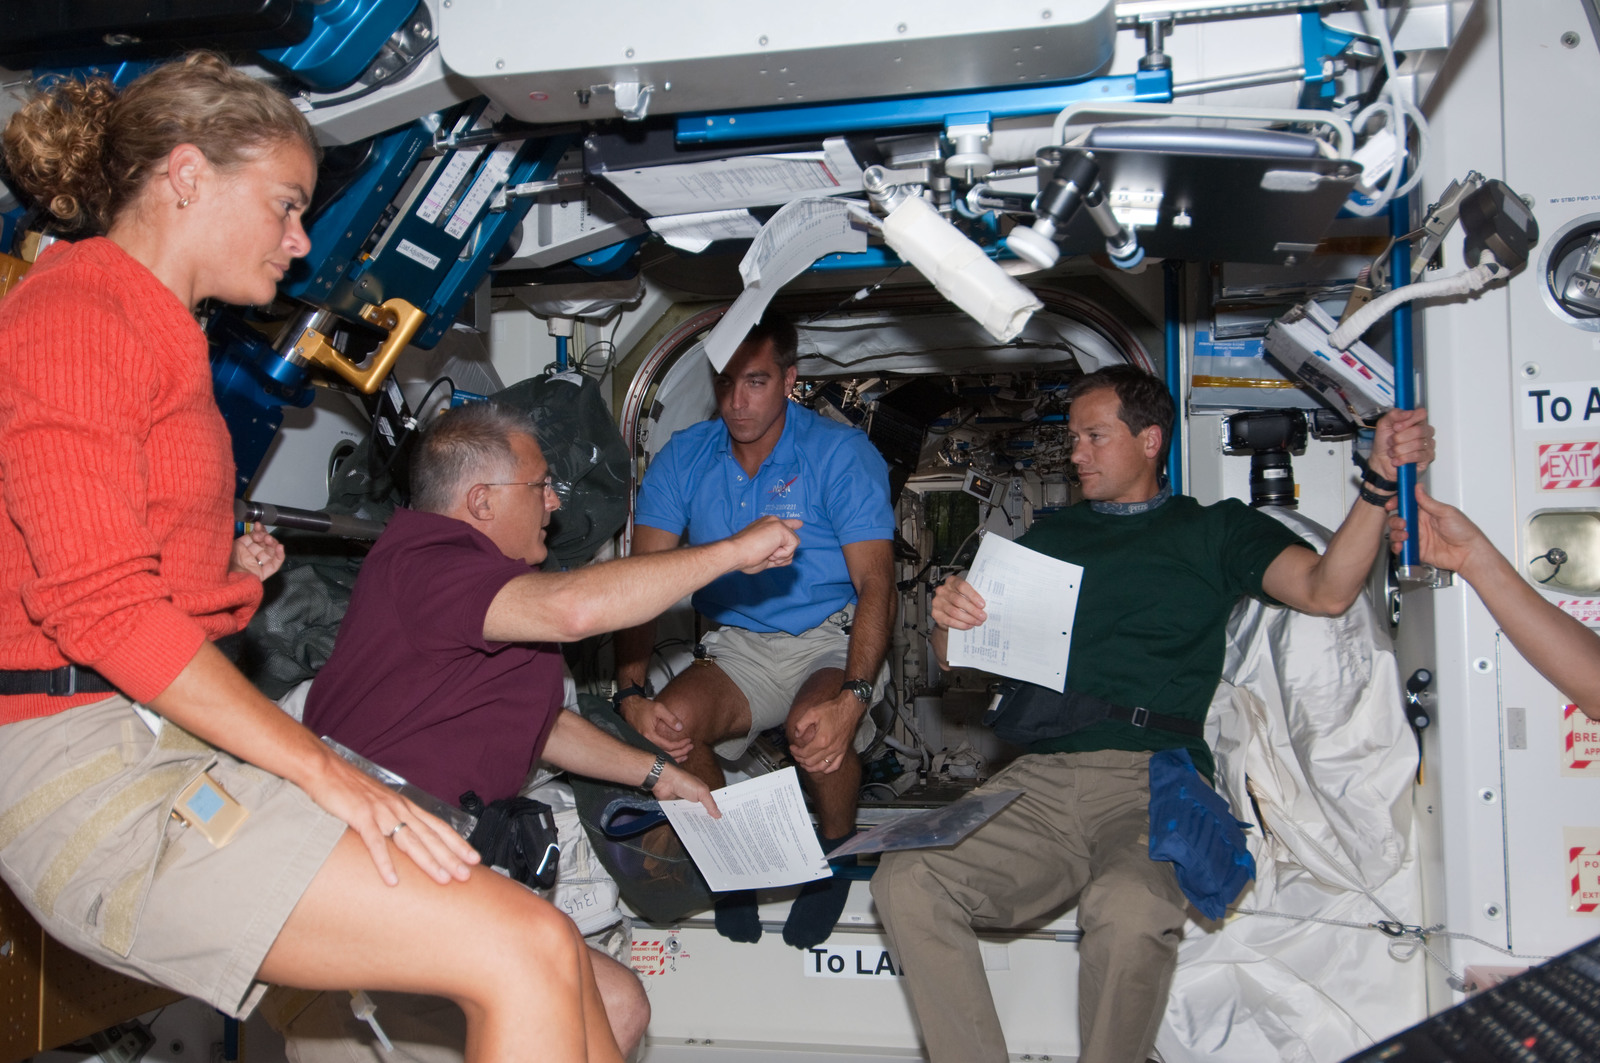 S127E007437 - STS-127 - Payette,Wolf,and Marshburn in the Node 1 during Joint Operations